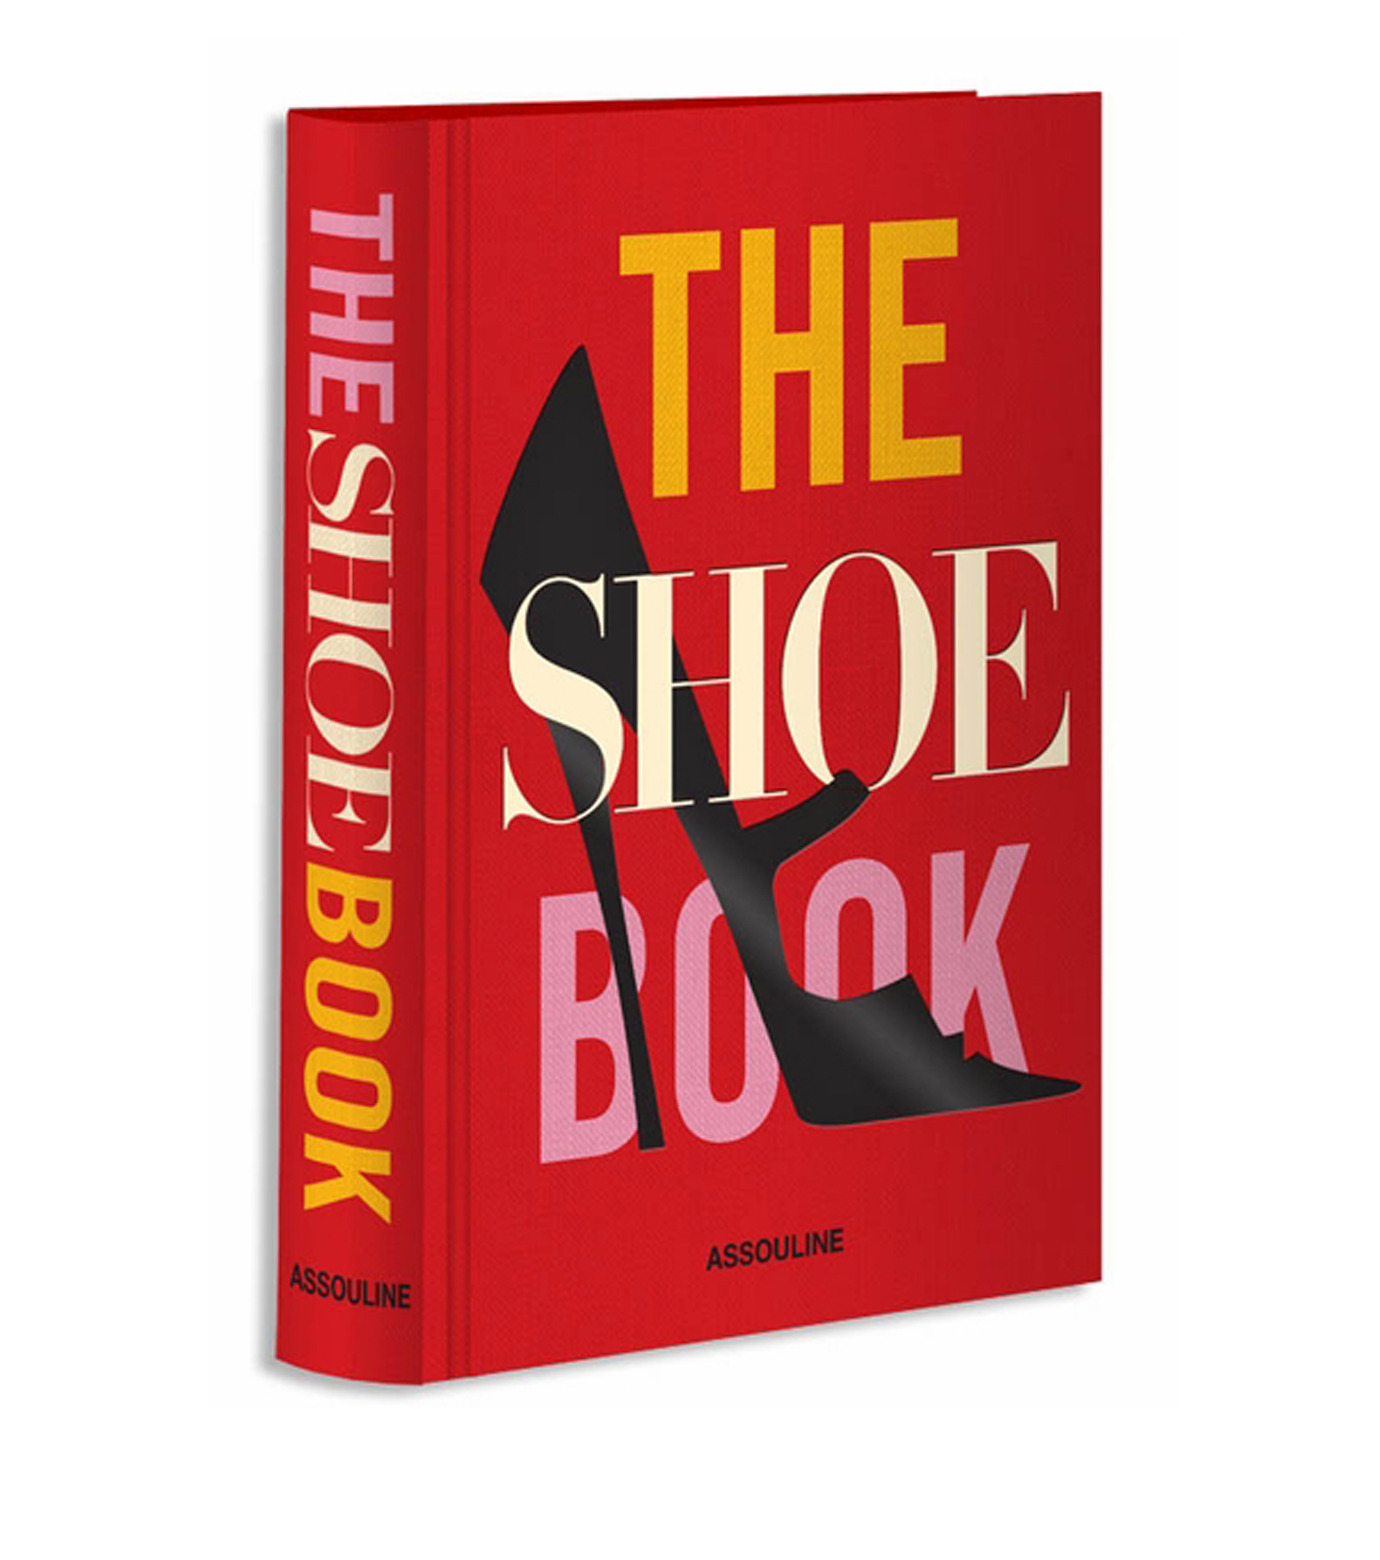 Assouline(アスリーヌ)のThe Shoe Book-RED(インテリア/OTHER-GOODS/interior/OTHER-GOODS)-978161428153-62 拡大詳細画像1